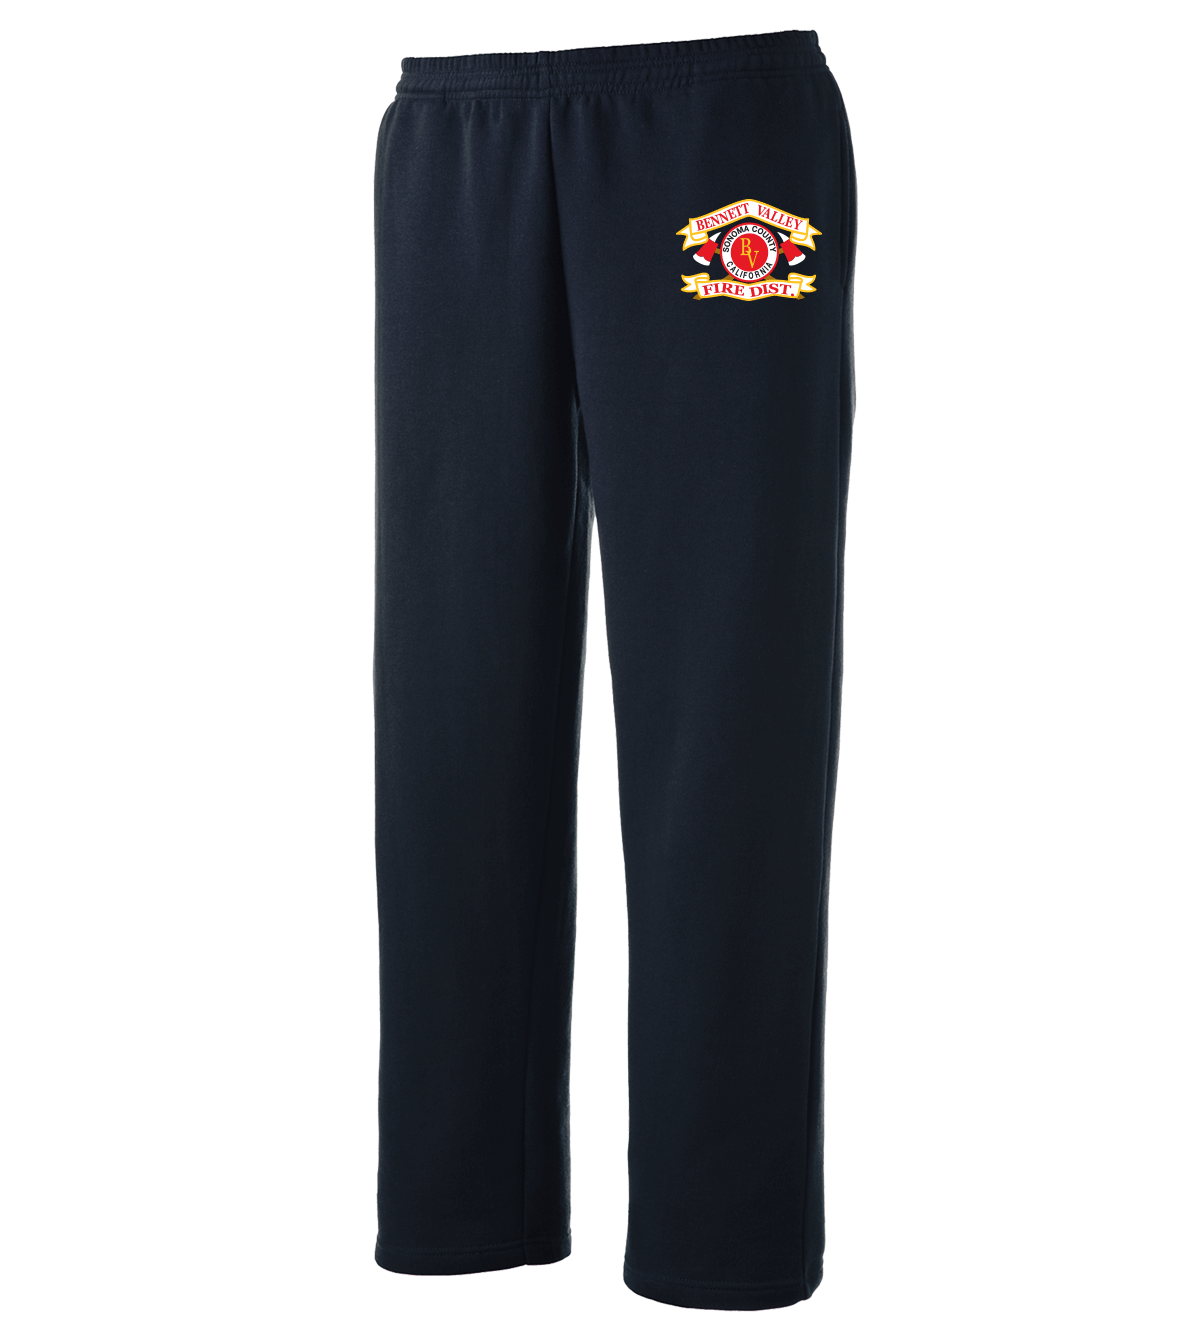 Bennett Valley Sweatpants